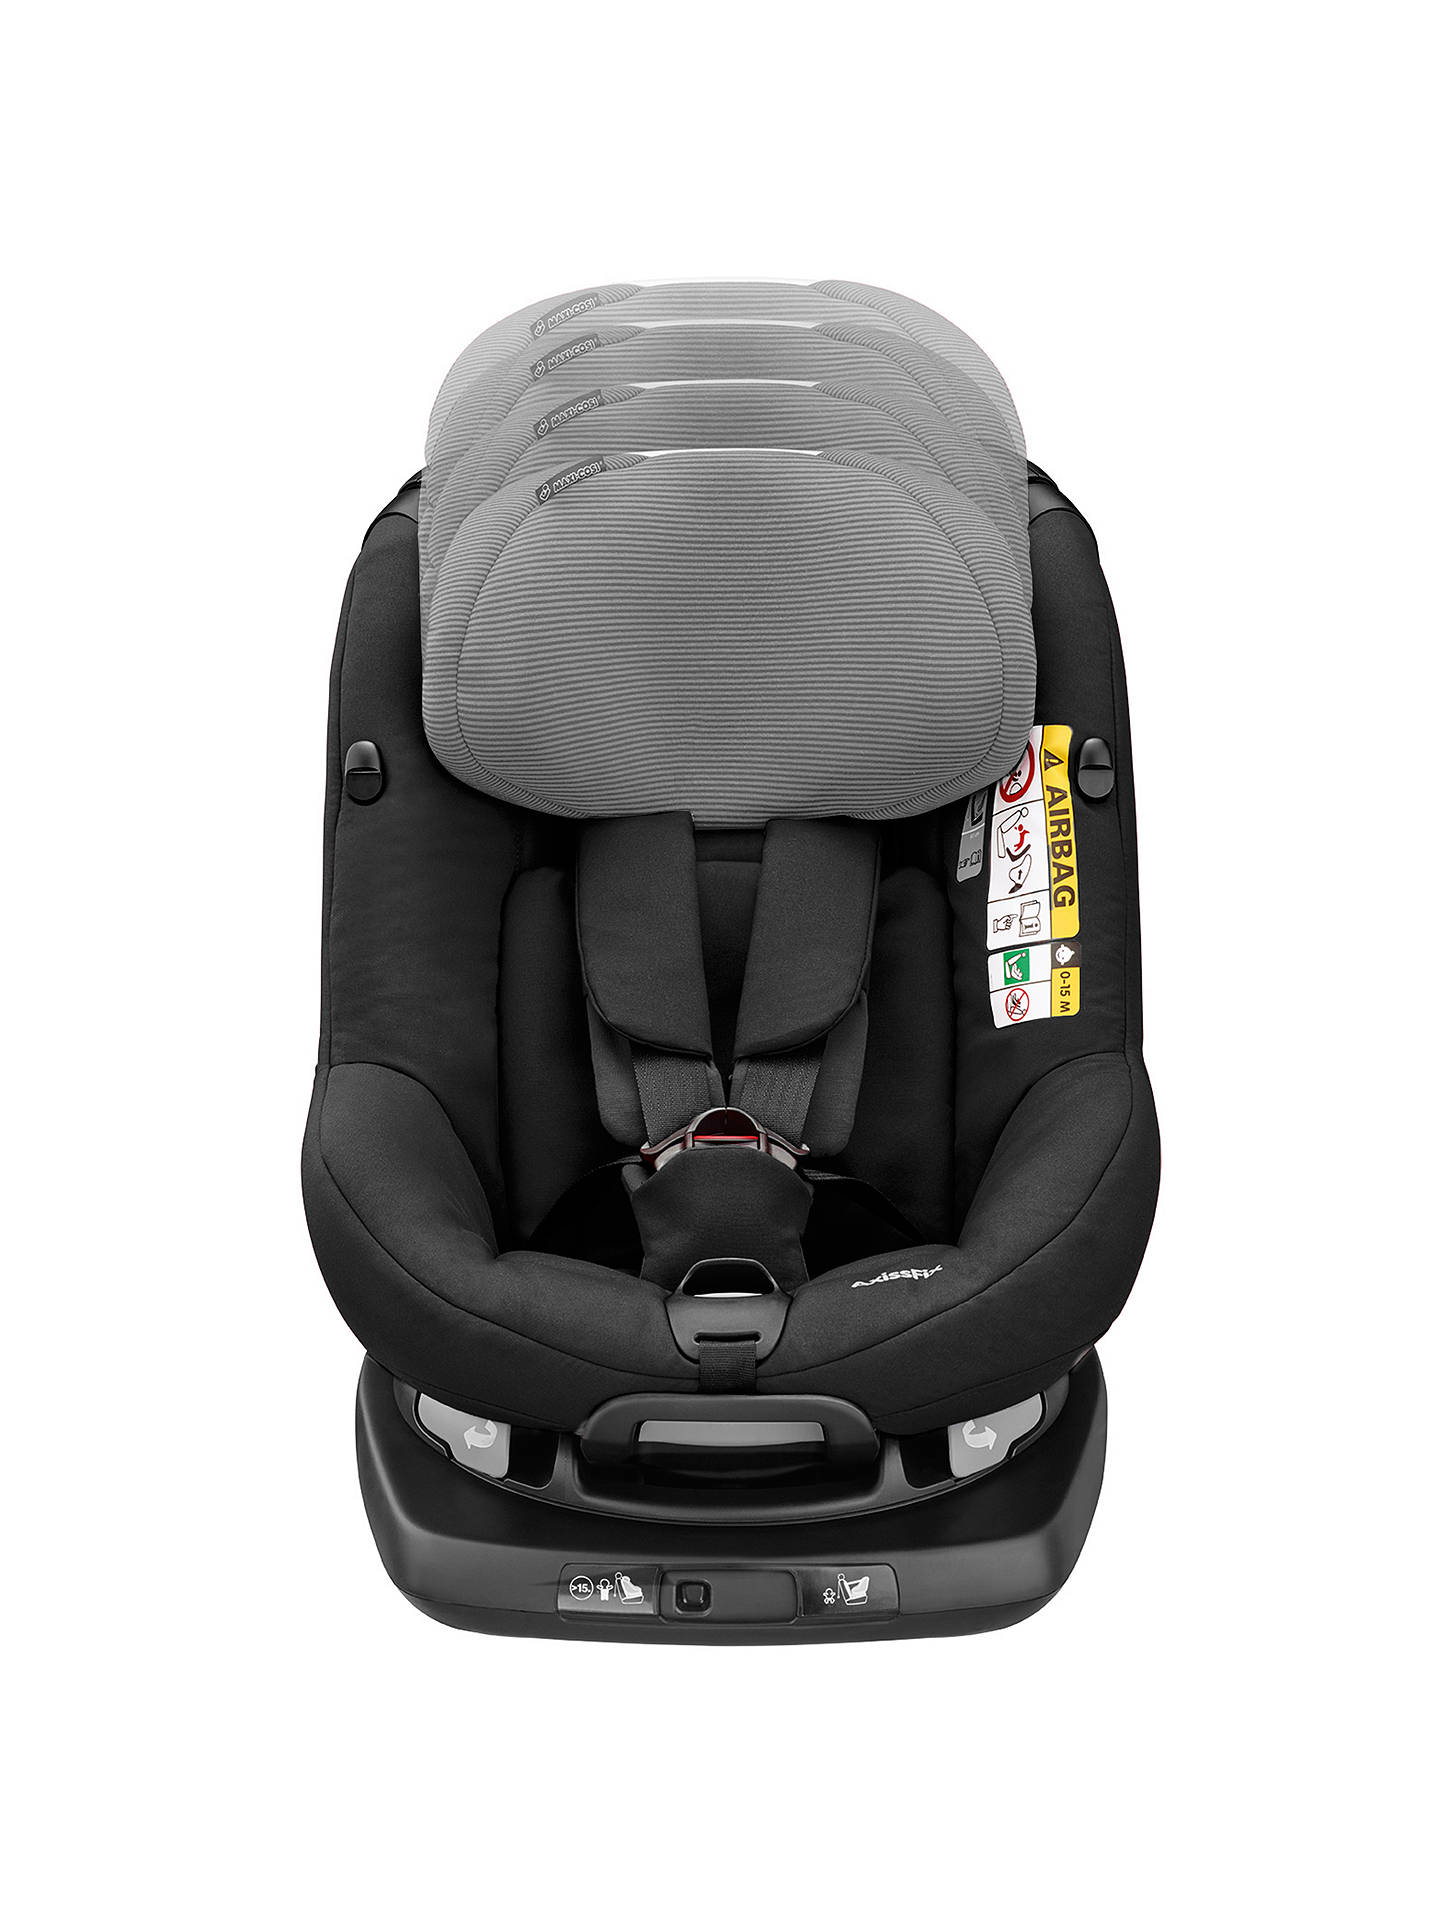 maxi cosi axissfix plus group 0 and 1 car seat black raven at john lewis partners. Black Bedroom Furniture Sets. Home Design Ideas